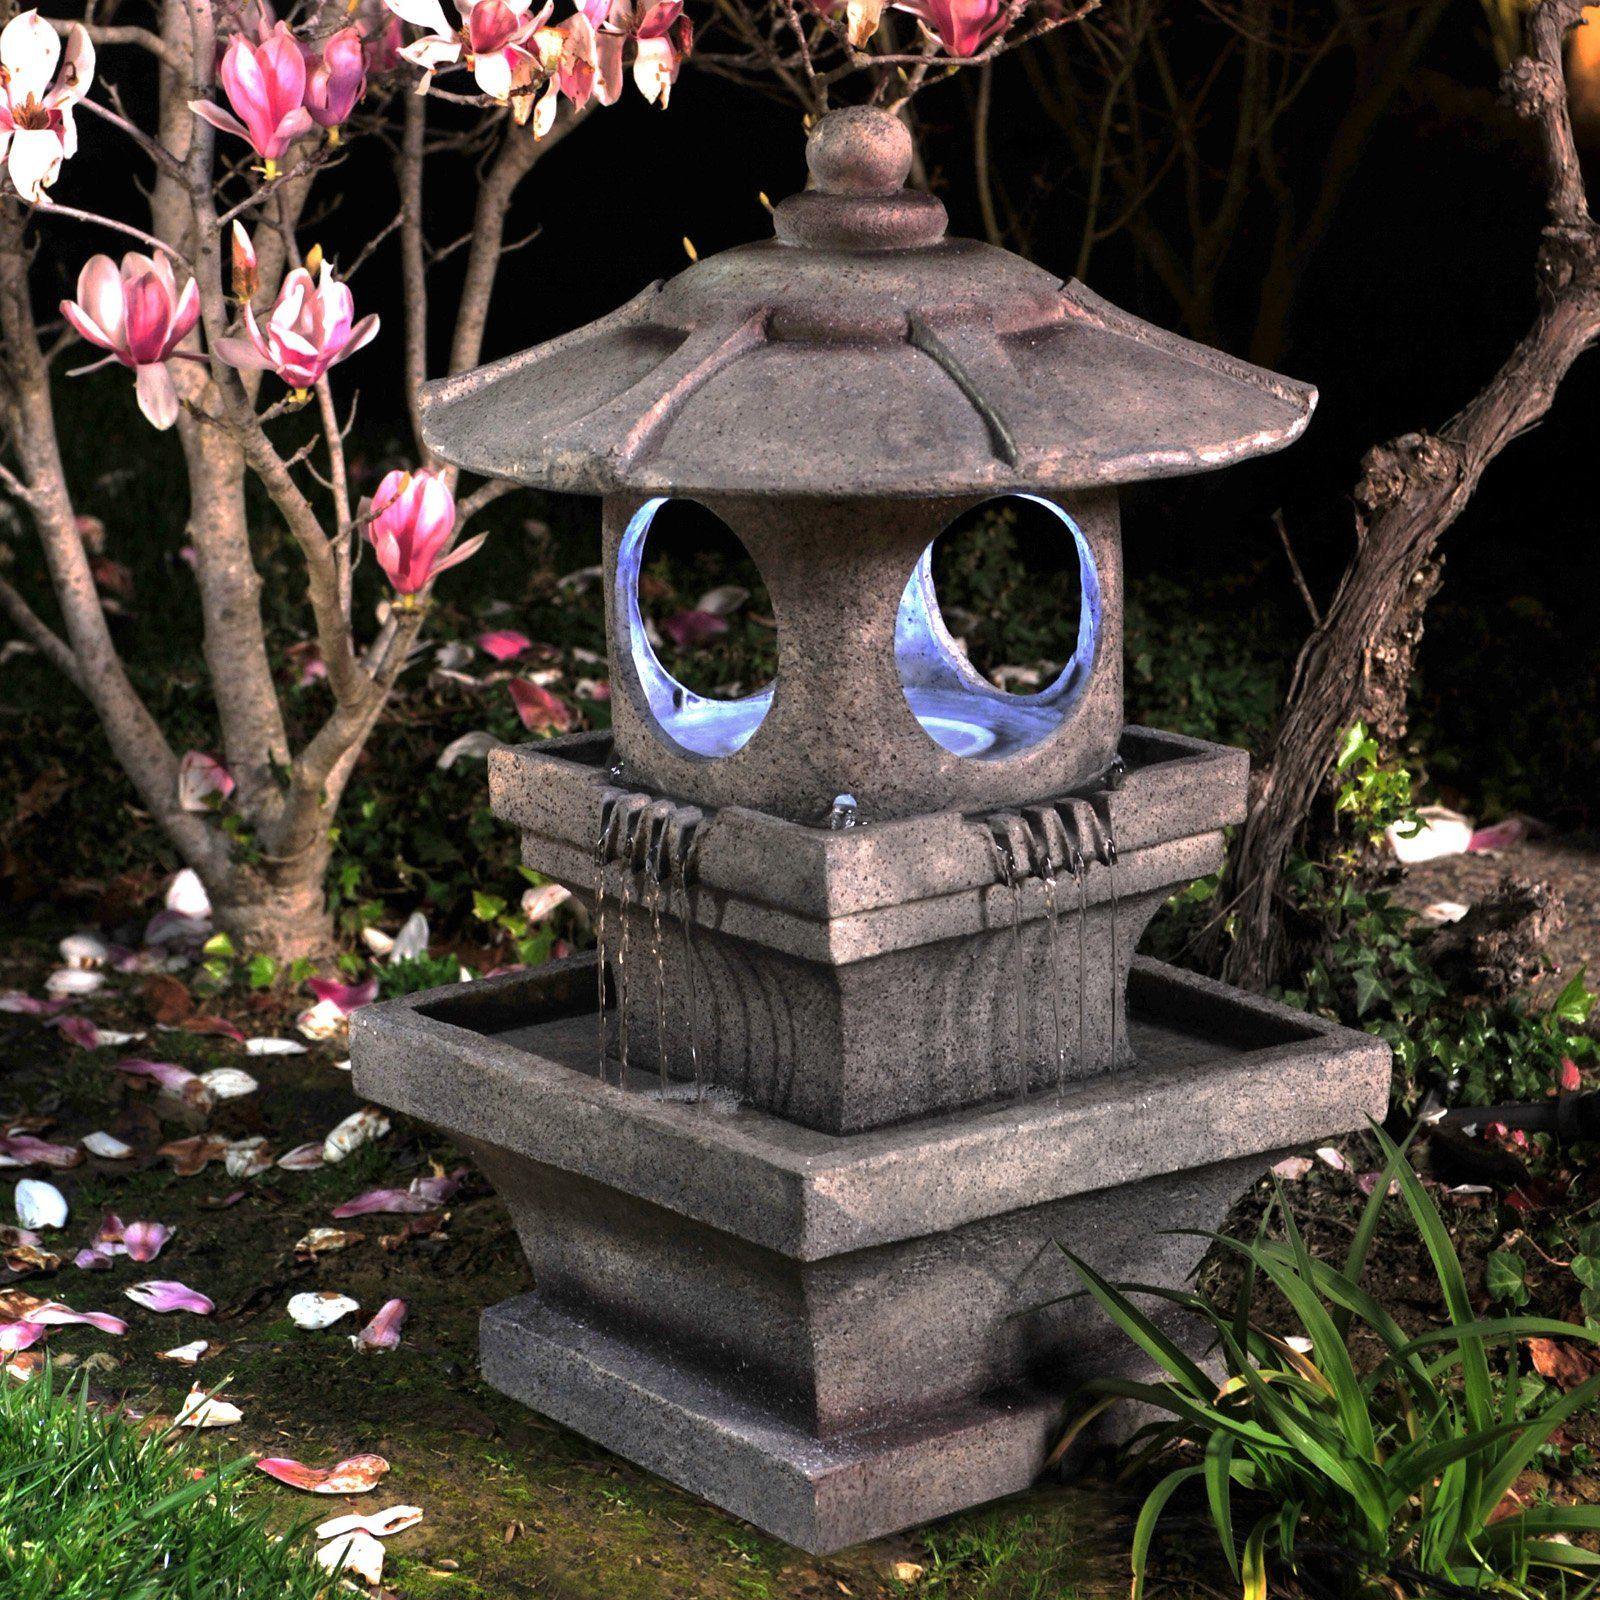 Have to have it bond mikio lighted garden fountain 19998 my bond mikio lighted garden fountain 19998 mozeypictures Choice Image